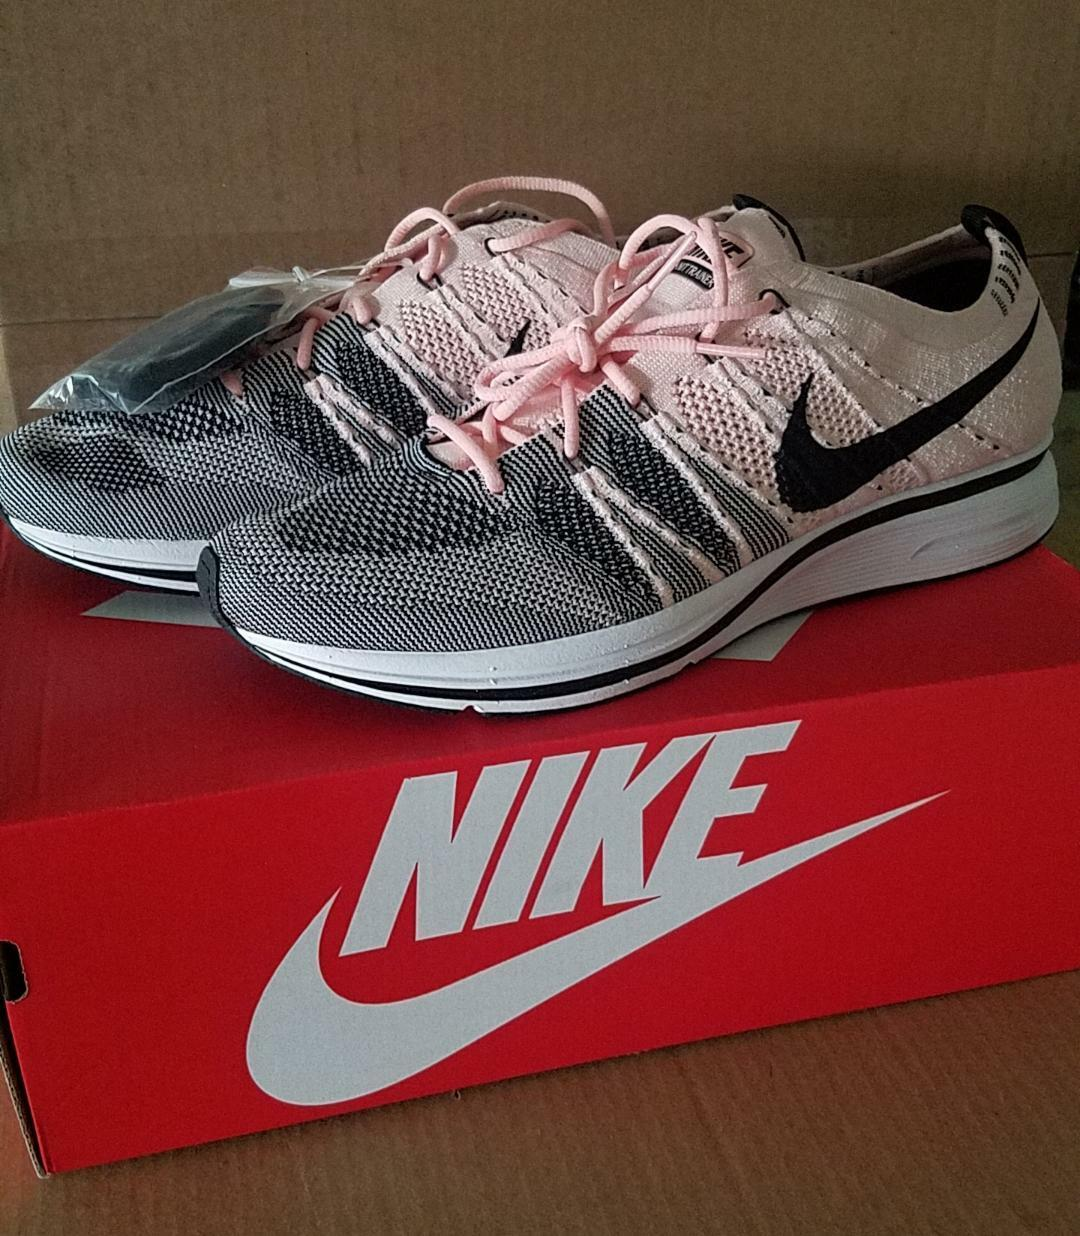 NEW Nike Flyknit Trainer Sunset Tint Pink Black White AH8396-600 size 10 New shoes for men and women, limited time discount